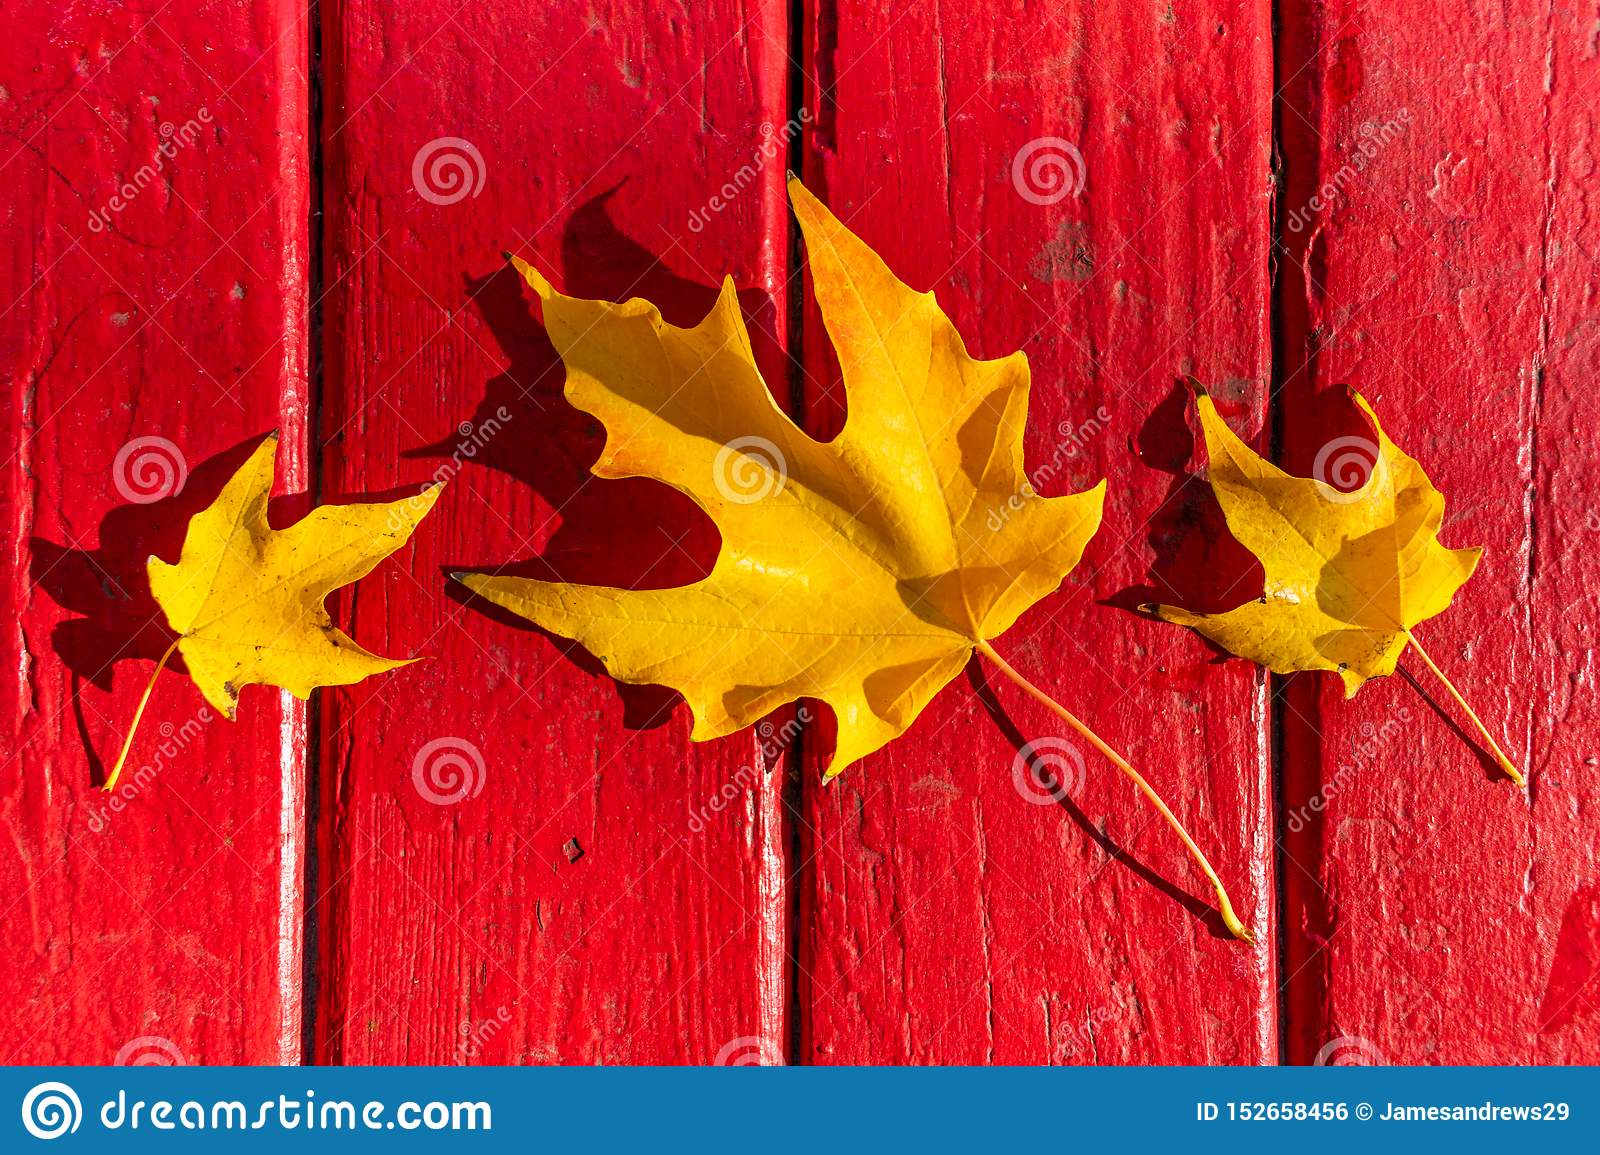 Three Golden Leaves during Autumn on a Red Wooden Table